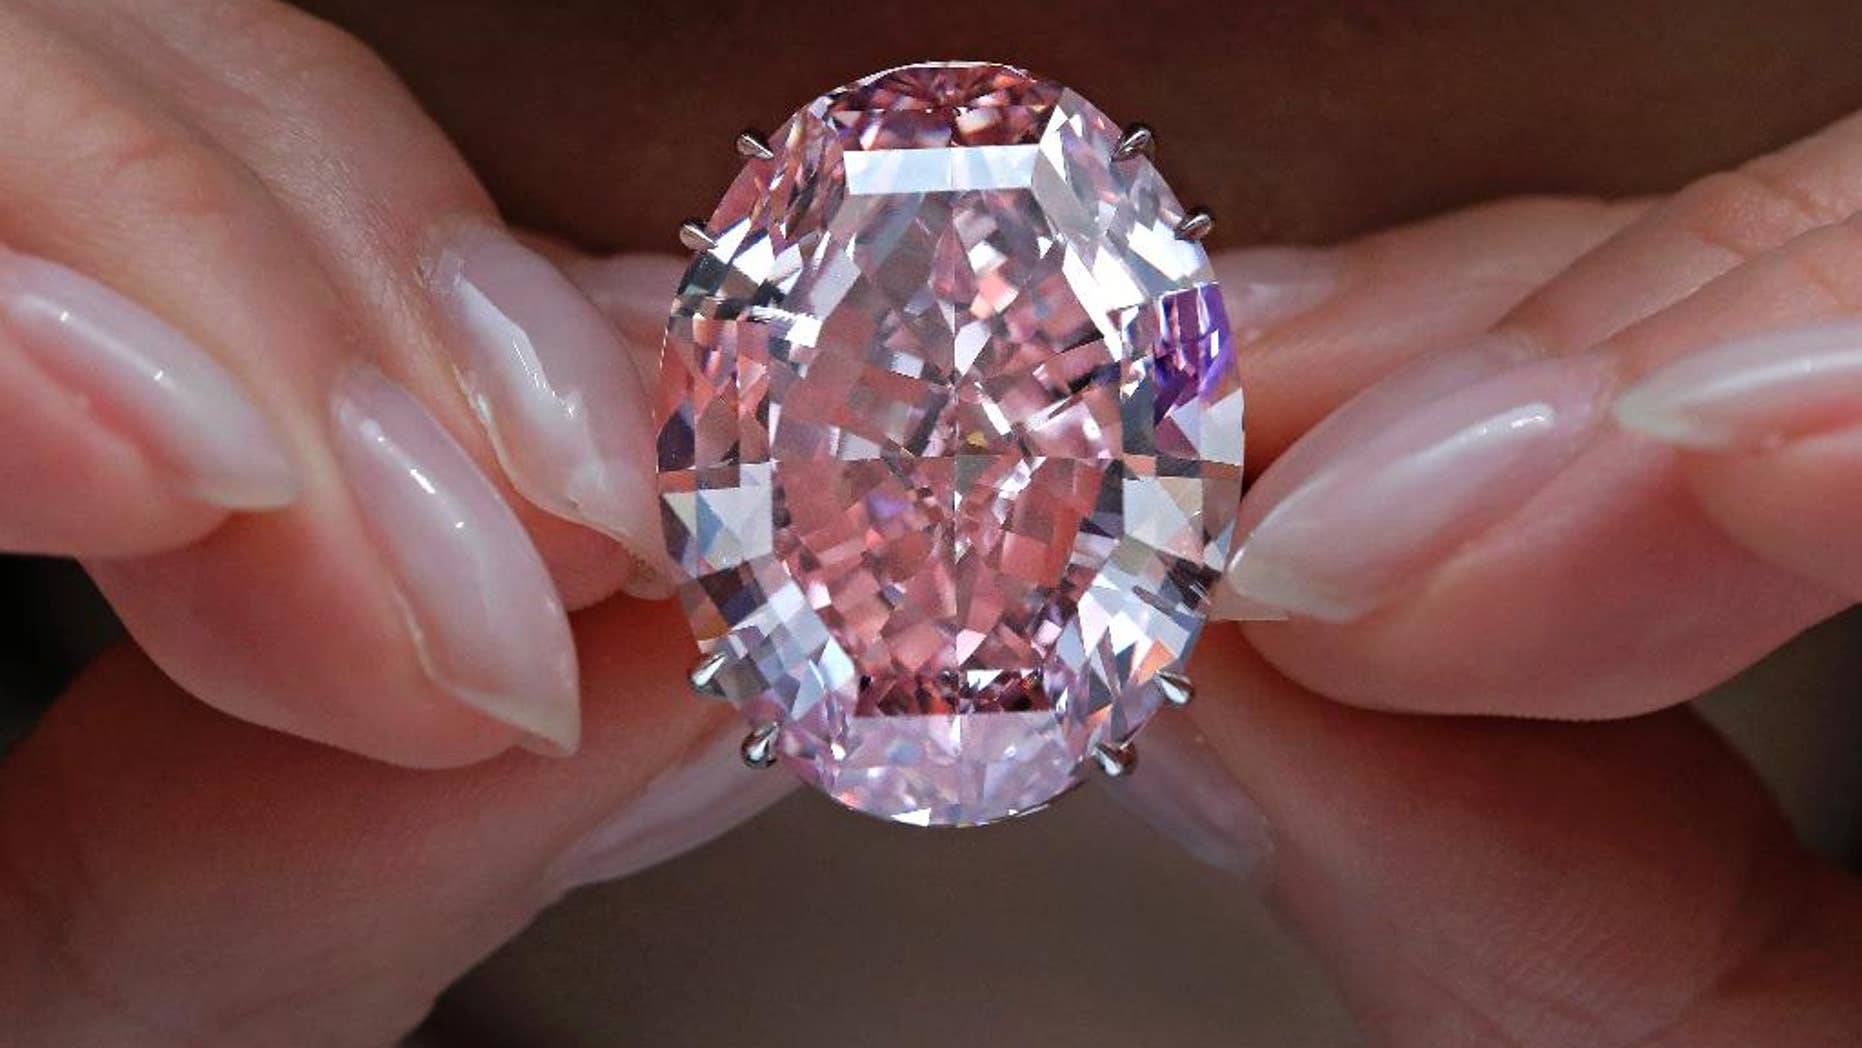 "FILE - In this Wednesday, March 29, 2017, file photo, the ""Pink Star"" diamond, the most valuable cut diamond ever offered at auction, is displayed by a model at a Sotheby's auction room in Hong Kong. The stunning 59.6 carat diamond has sold for HK$553 million or US$71.2 million at a Sotheby's auction in Hong Kong, setting a record for any diamond or jewel. It's Also the highest price for any work ever sold at auction in Asia. (AP Photo/Vincent Yu, File)"